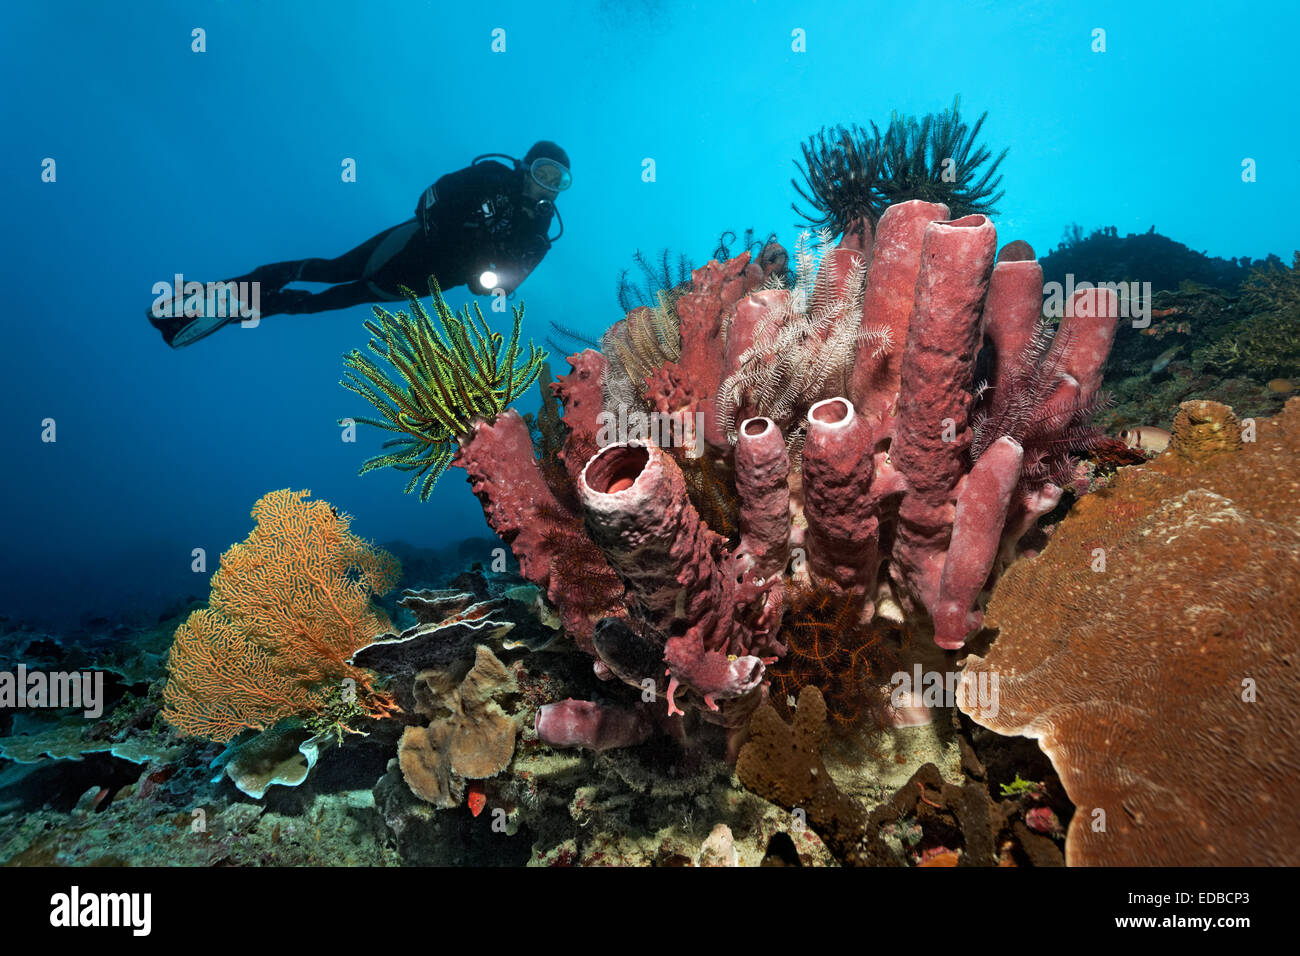 Divers looking at coral reef with various Sea lilies (Crinoidea) and red tube sponge (Cripbrochalina olemda), Great - Stock Image